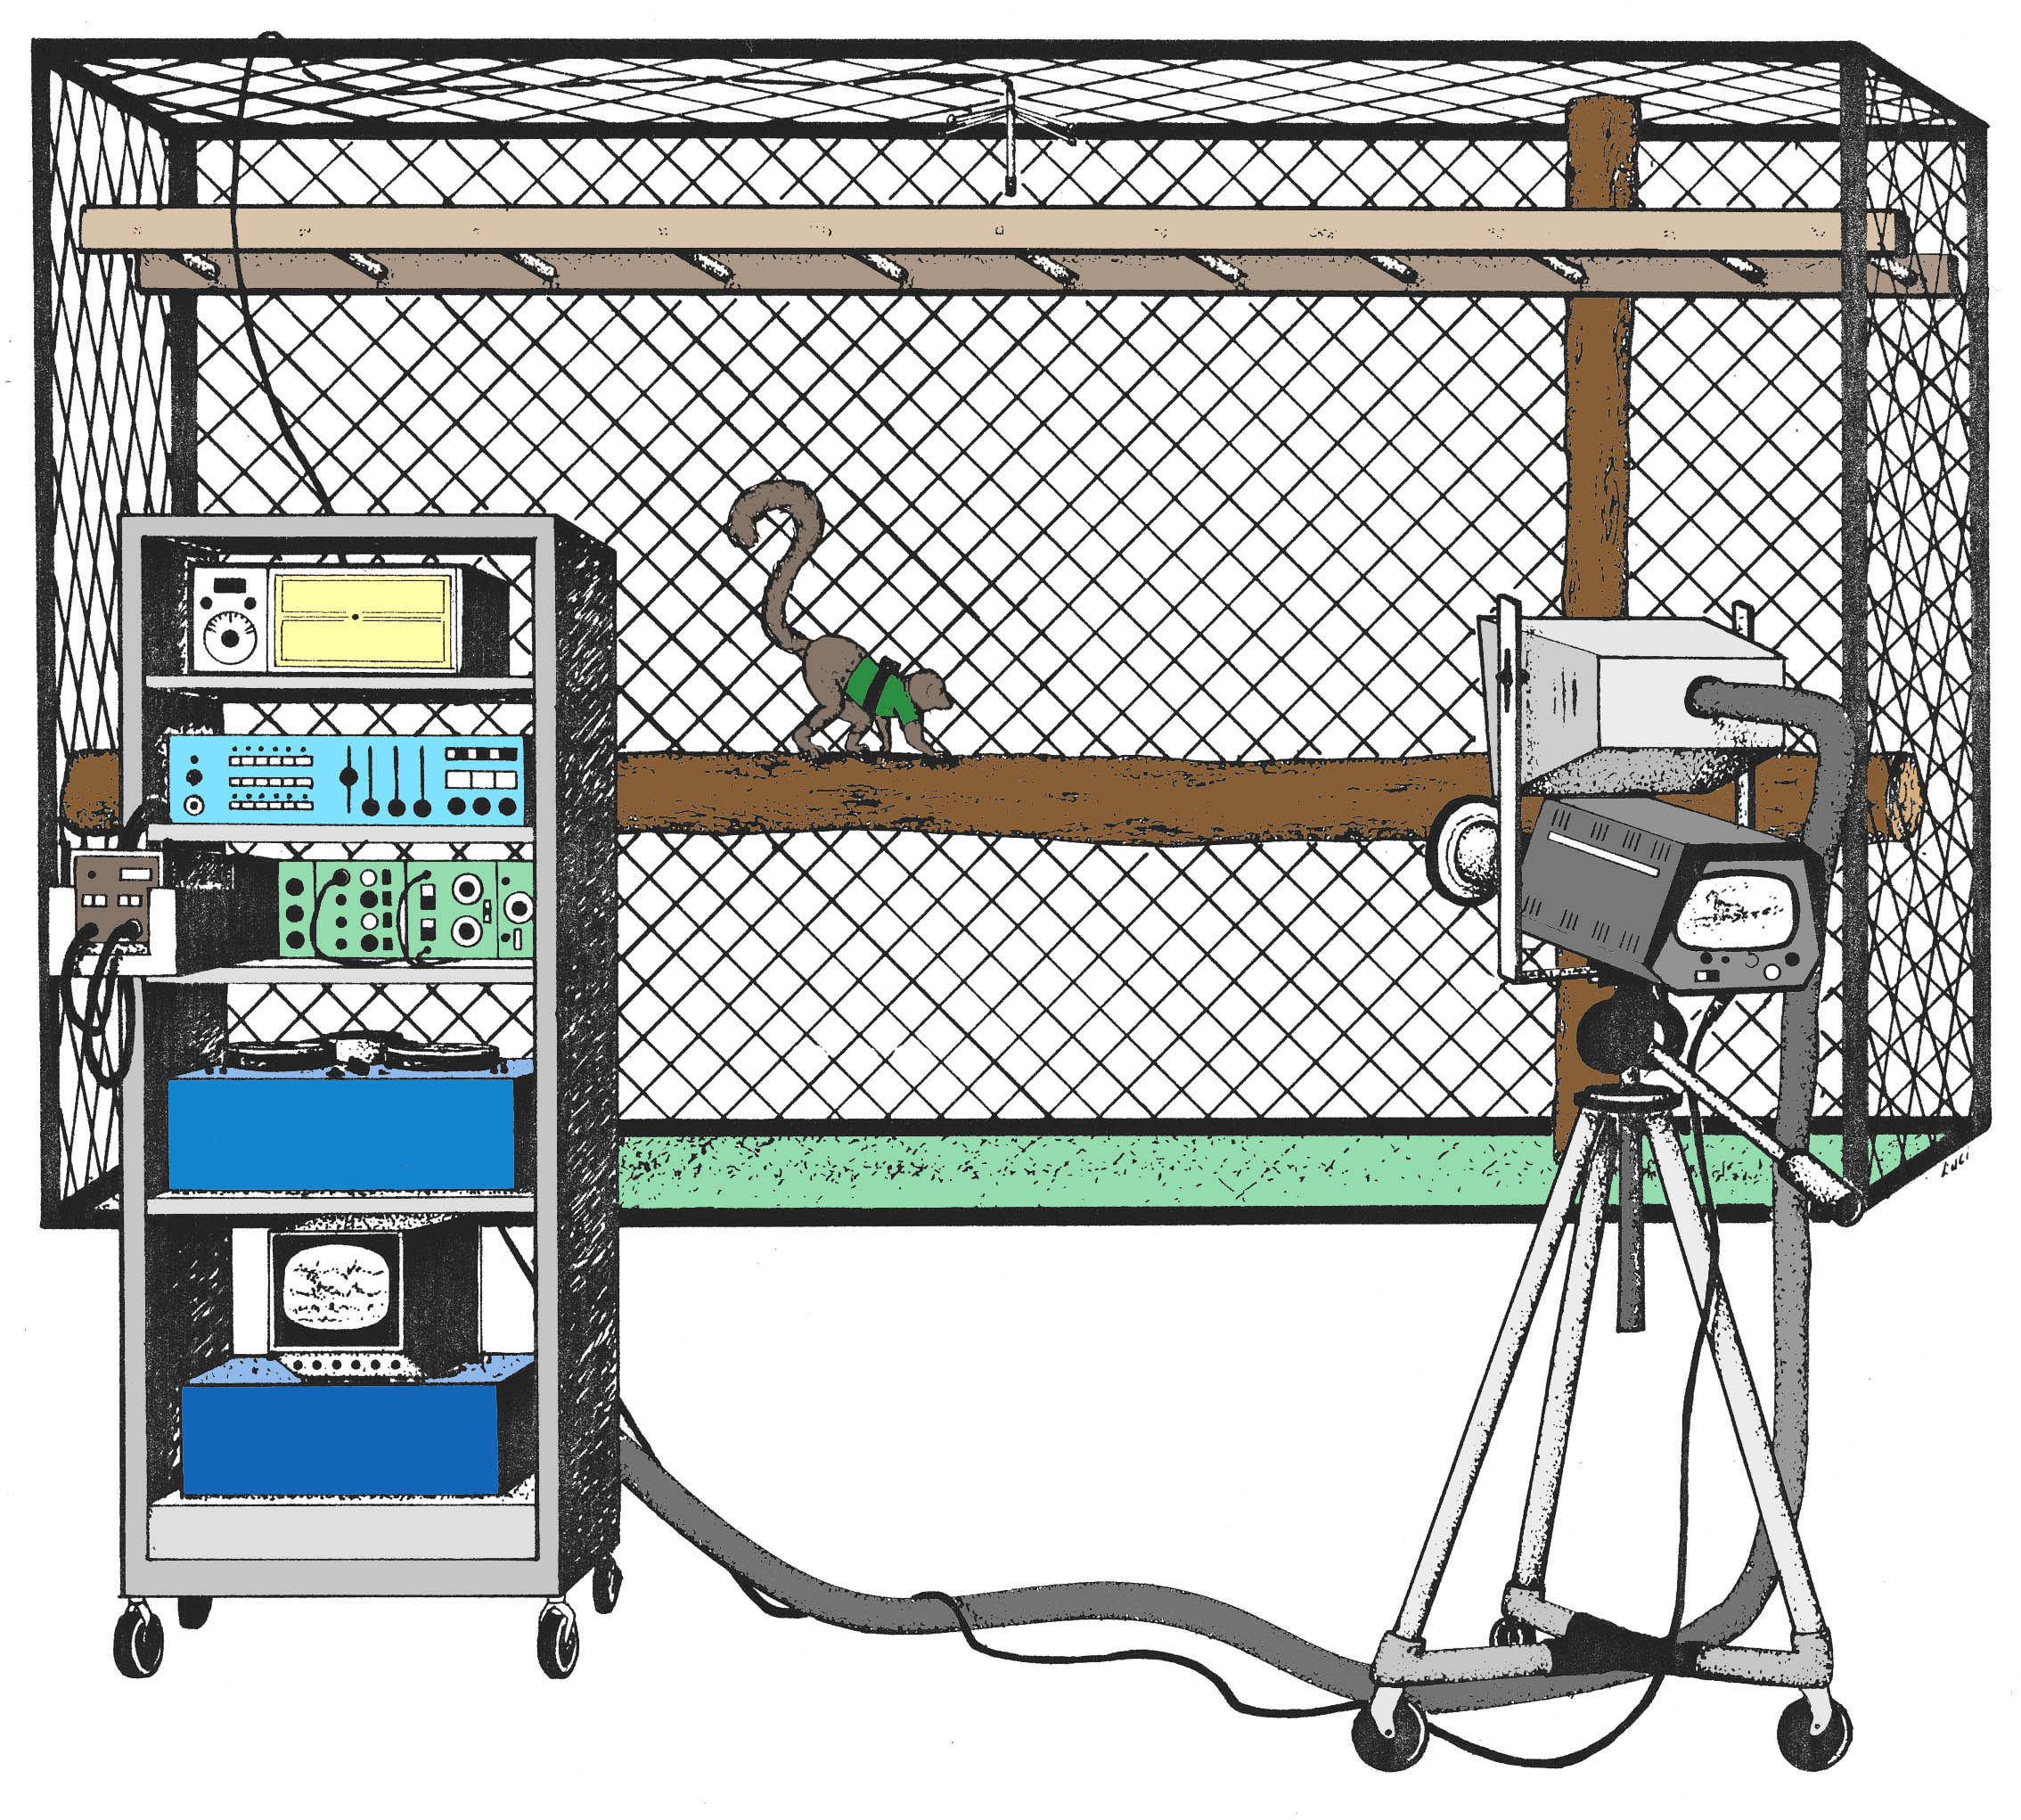 Schematic of Stony Brook Primate Locomotion Lab EMG recording set-up. Illustration by Luci Betti-Nash, nd